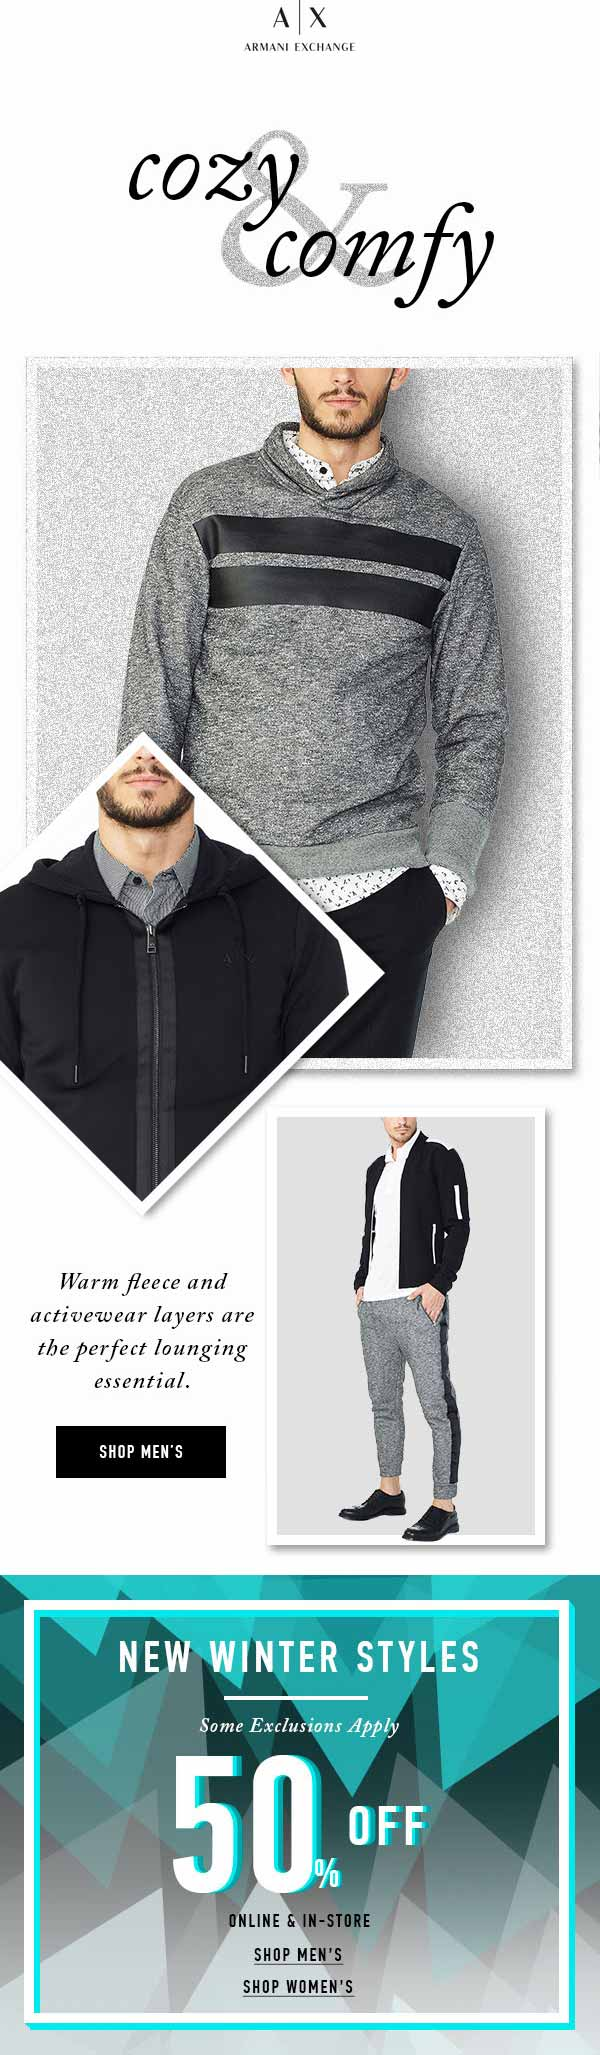 ArmaniExchange.com Promo Coupon 50% off winter styles at Armani Exchange, ditto online